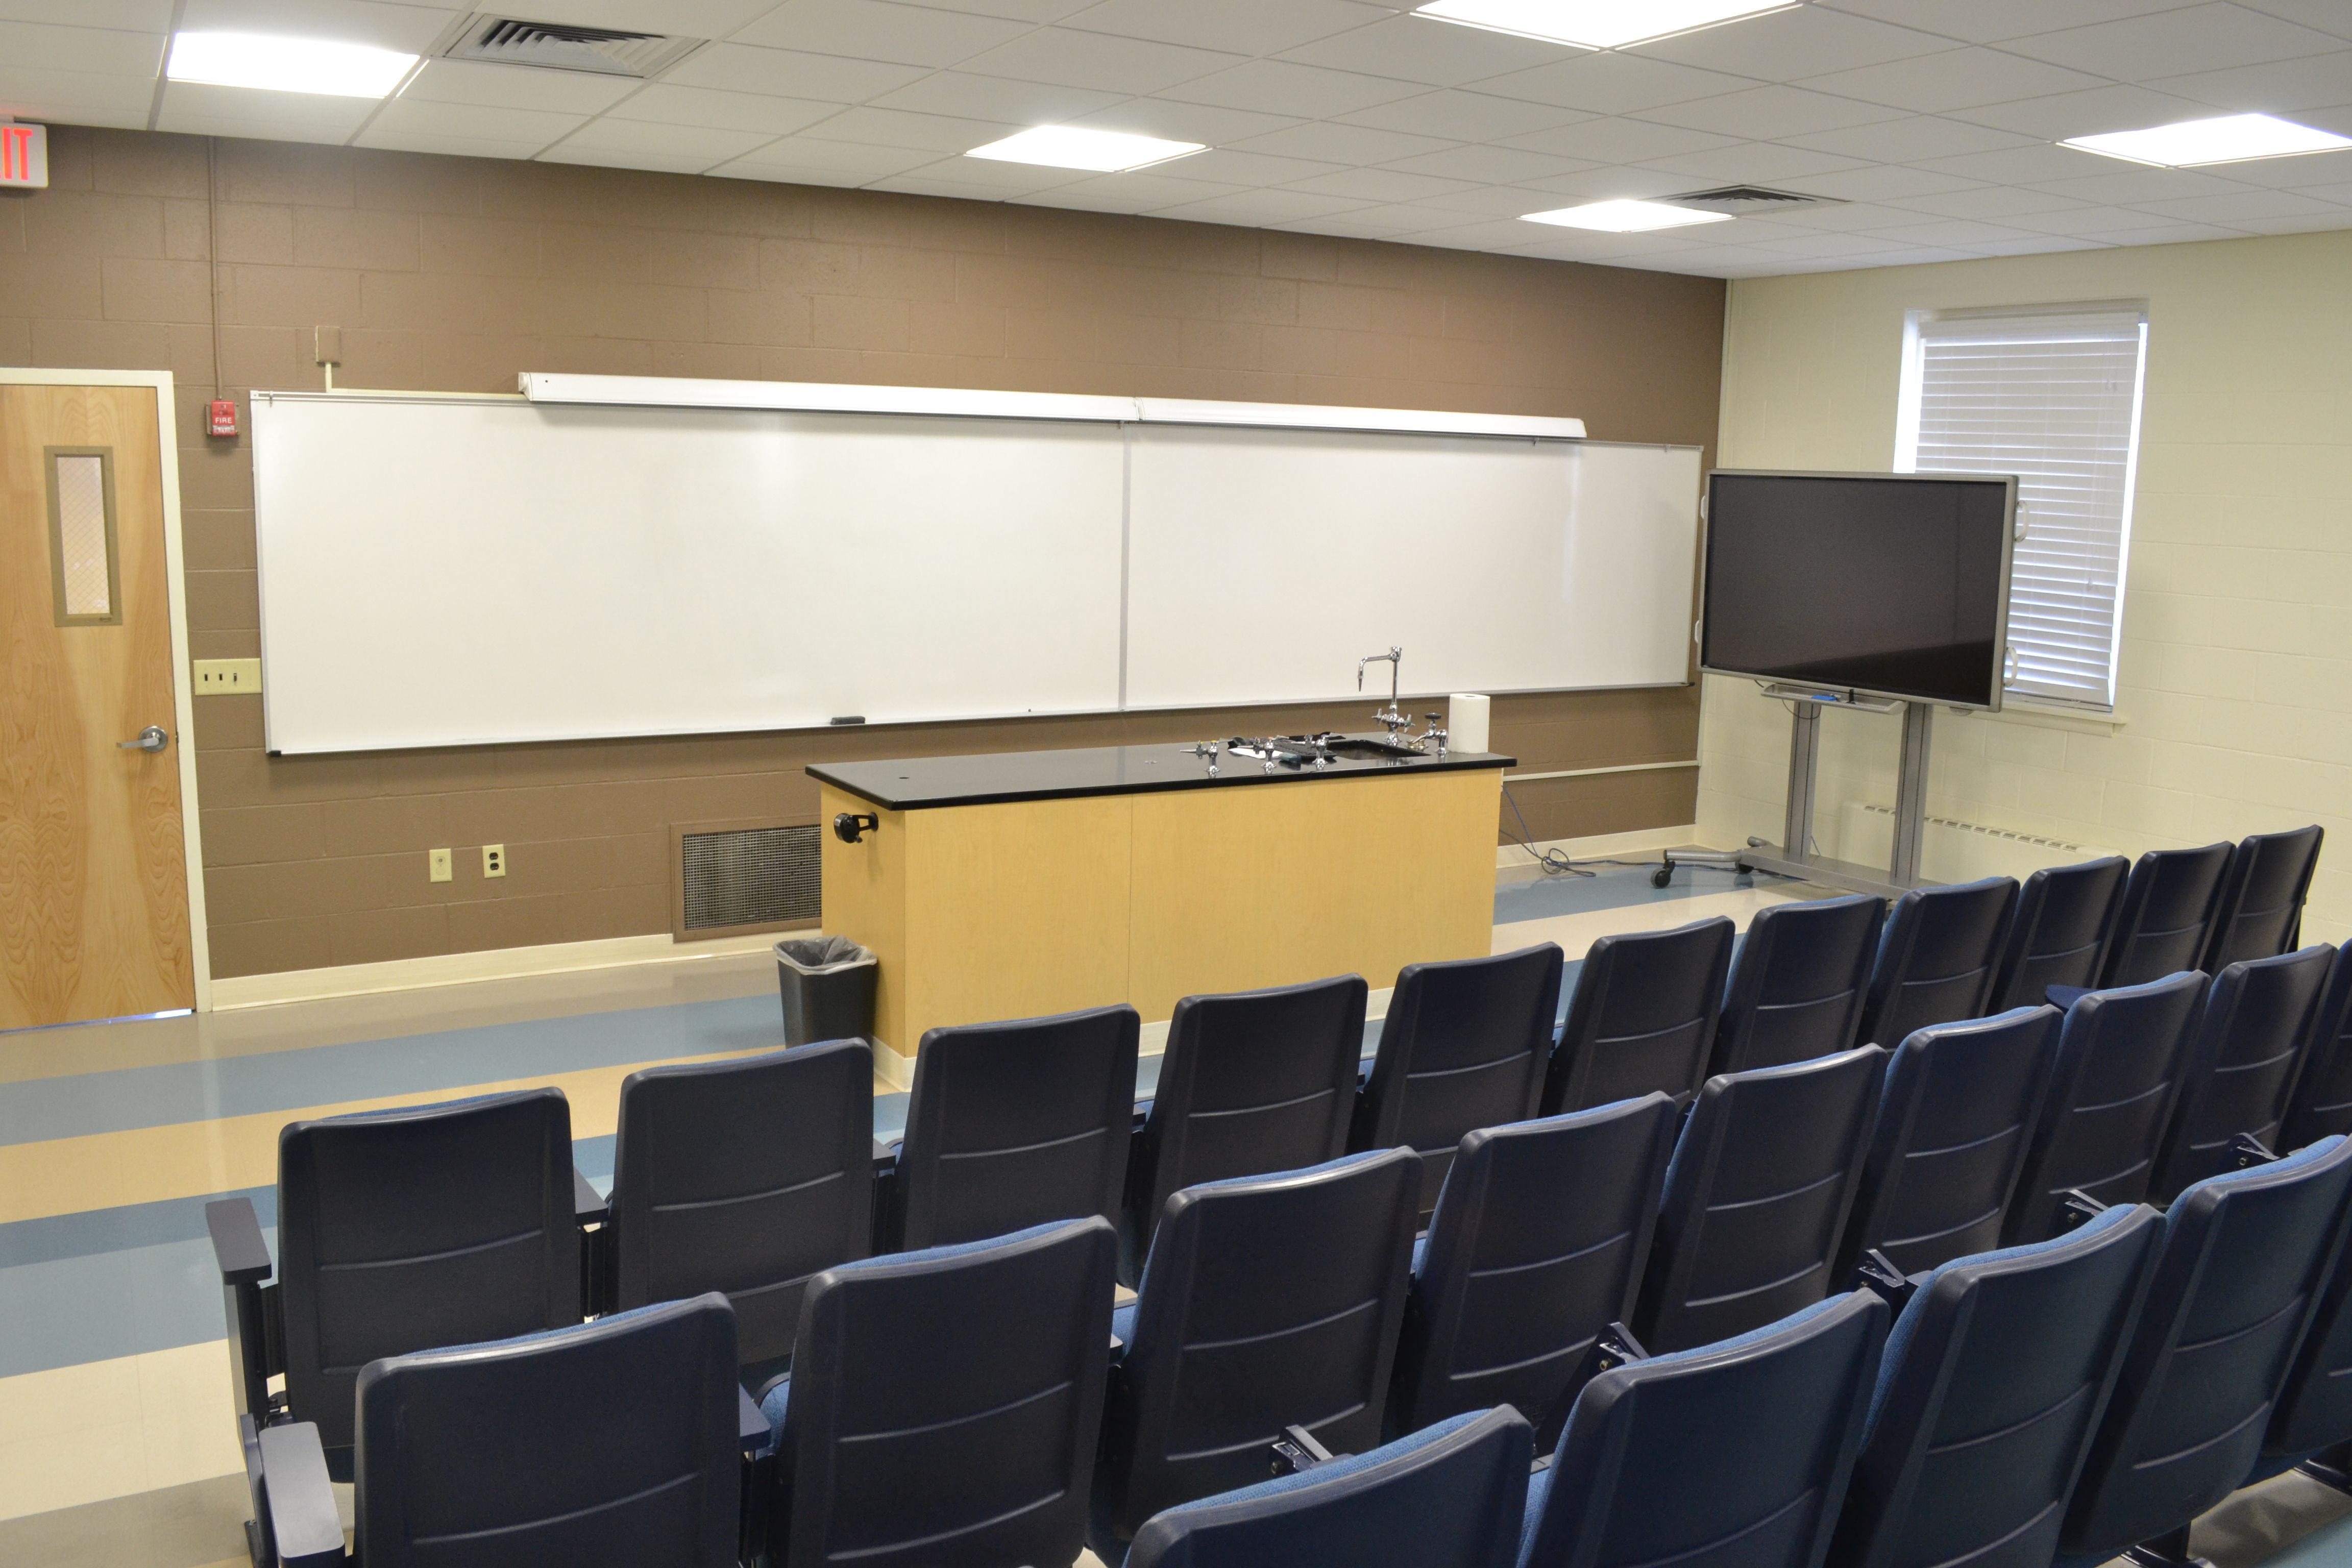 Aic Presents Small Individualized Class Sizes To Maximize Student Professor Connections At Aic You Re A Student Not Jus Home Decor Conference Room Table Decor